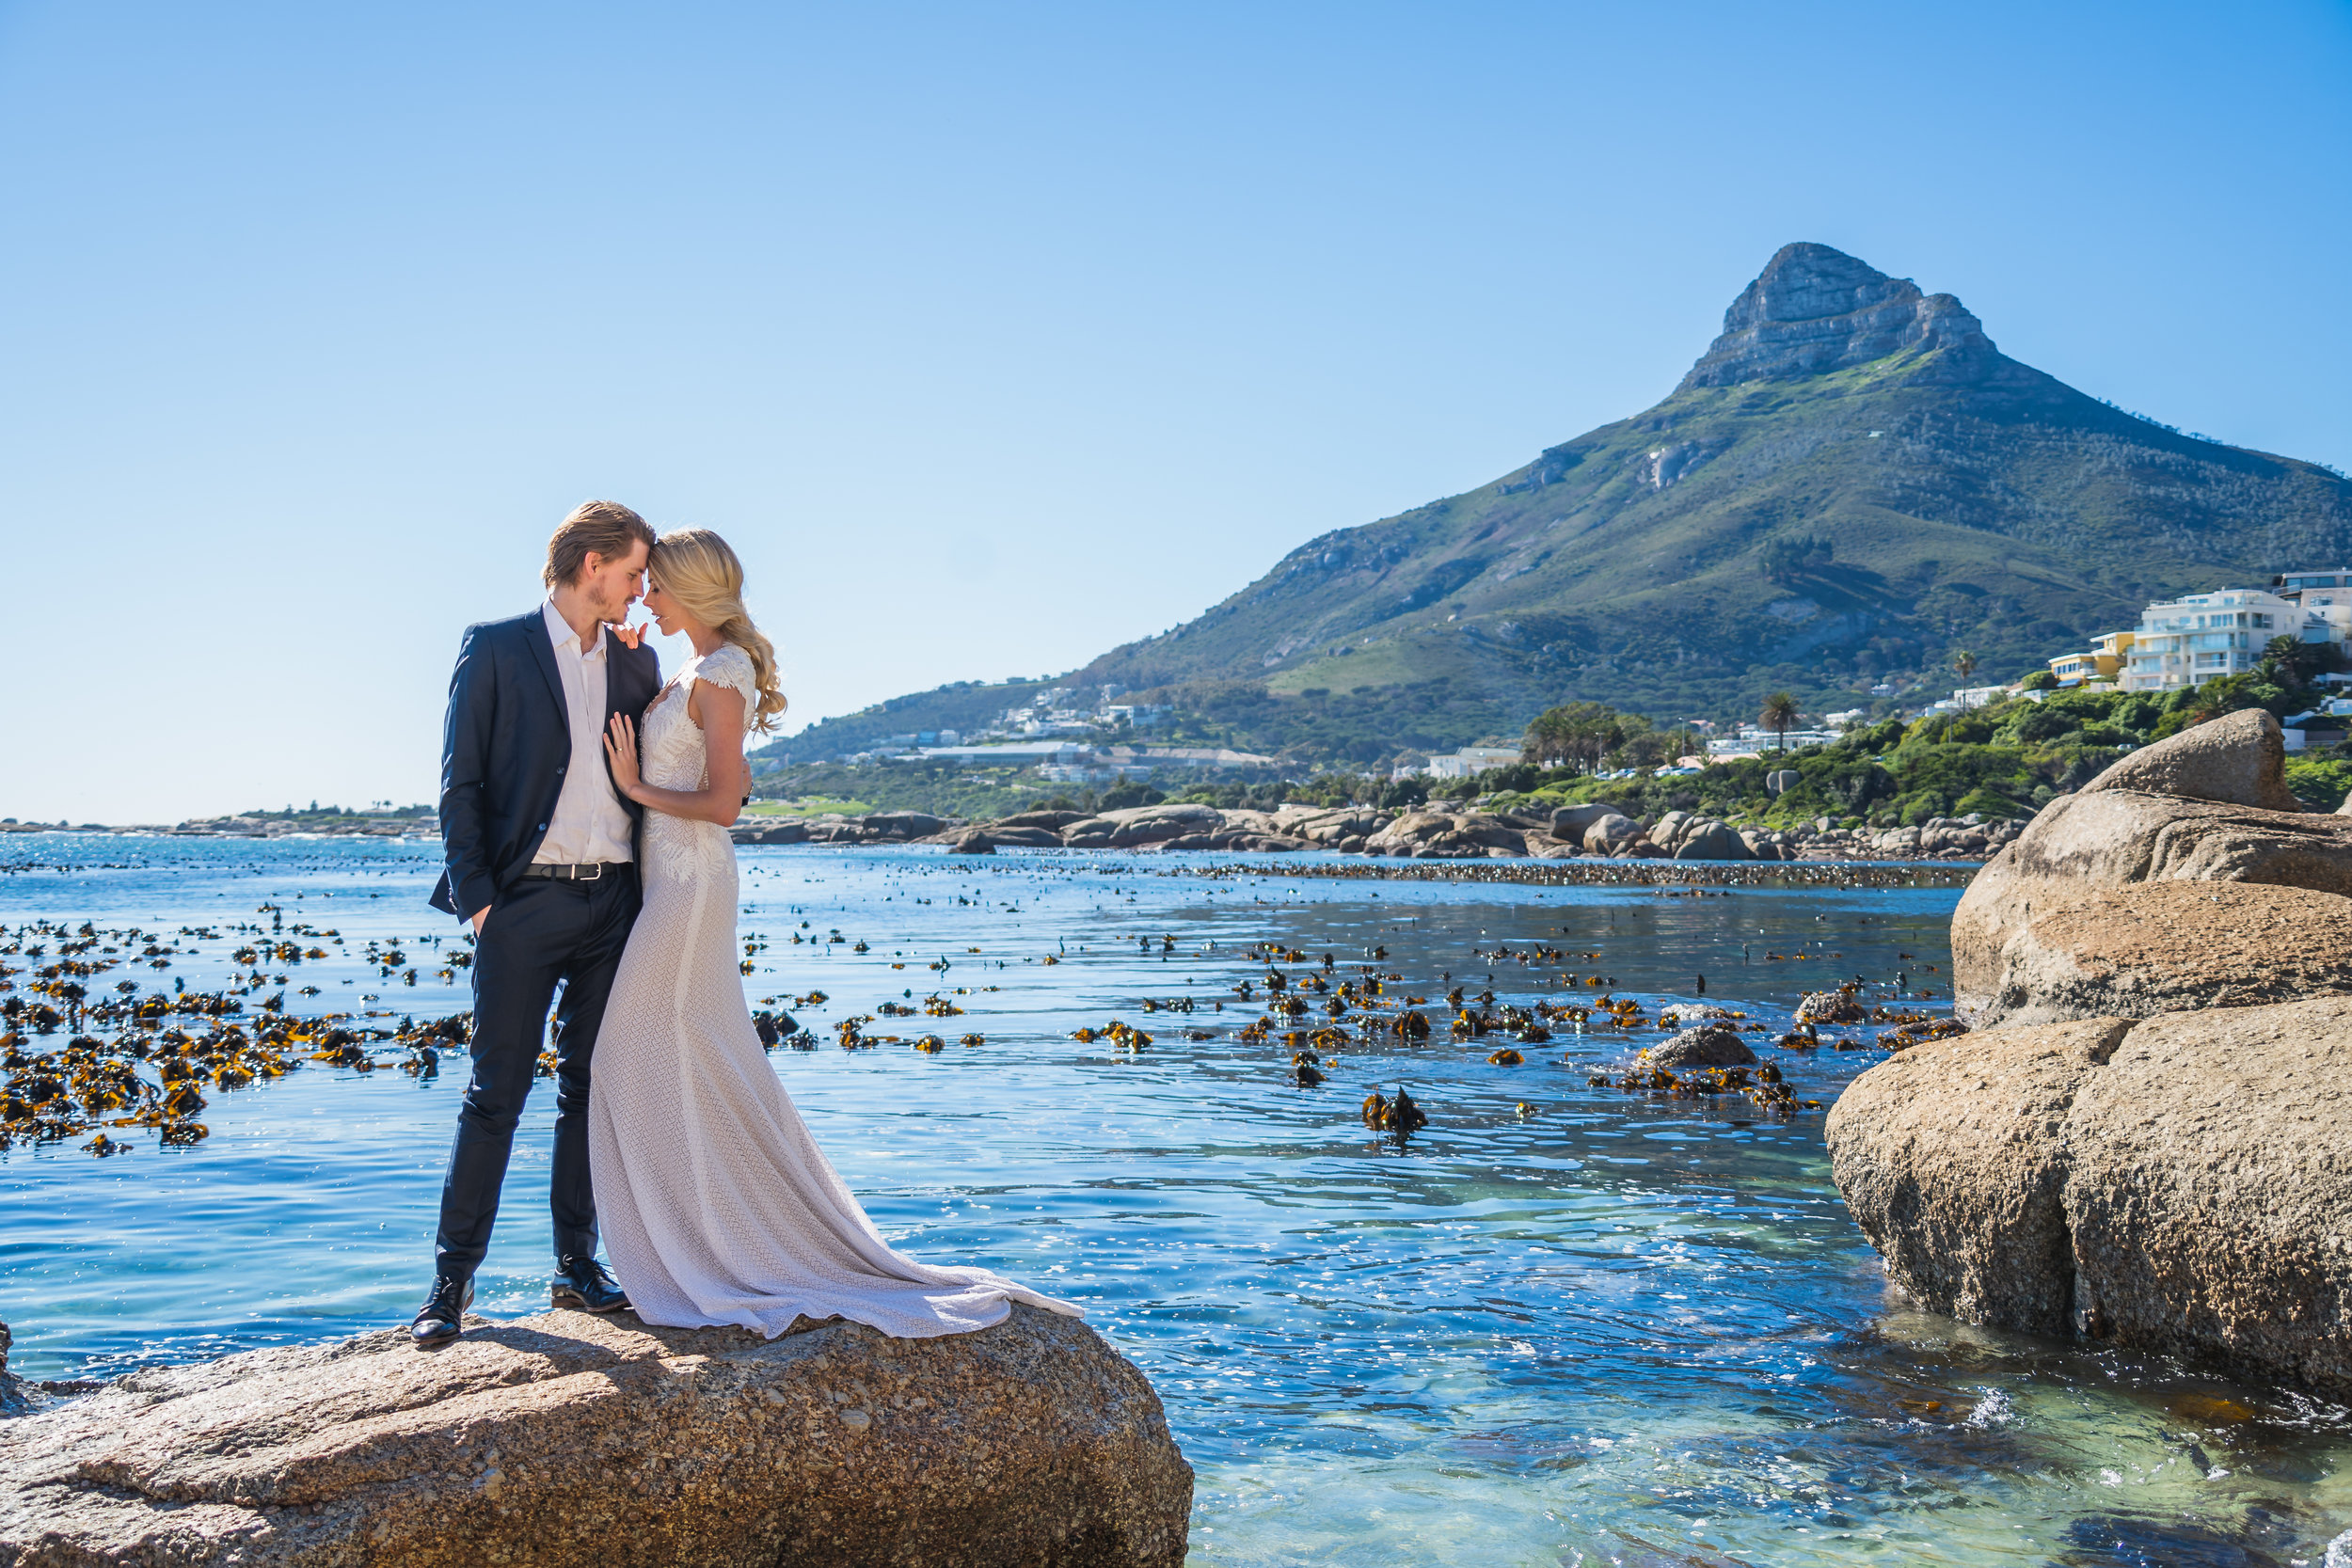 Bokoven Camps Bay Wedding Elopement Photography - Cape Town Image Co-21.jpg